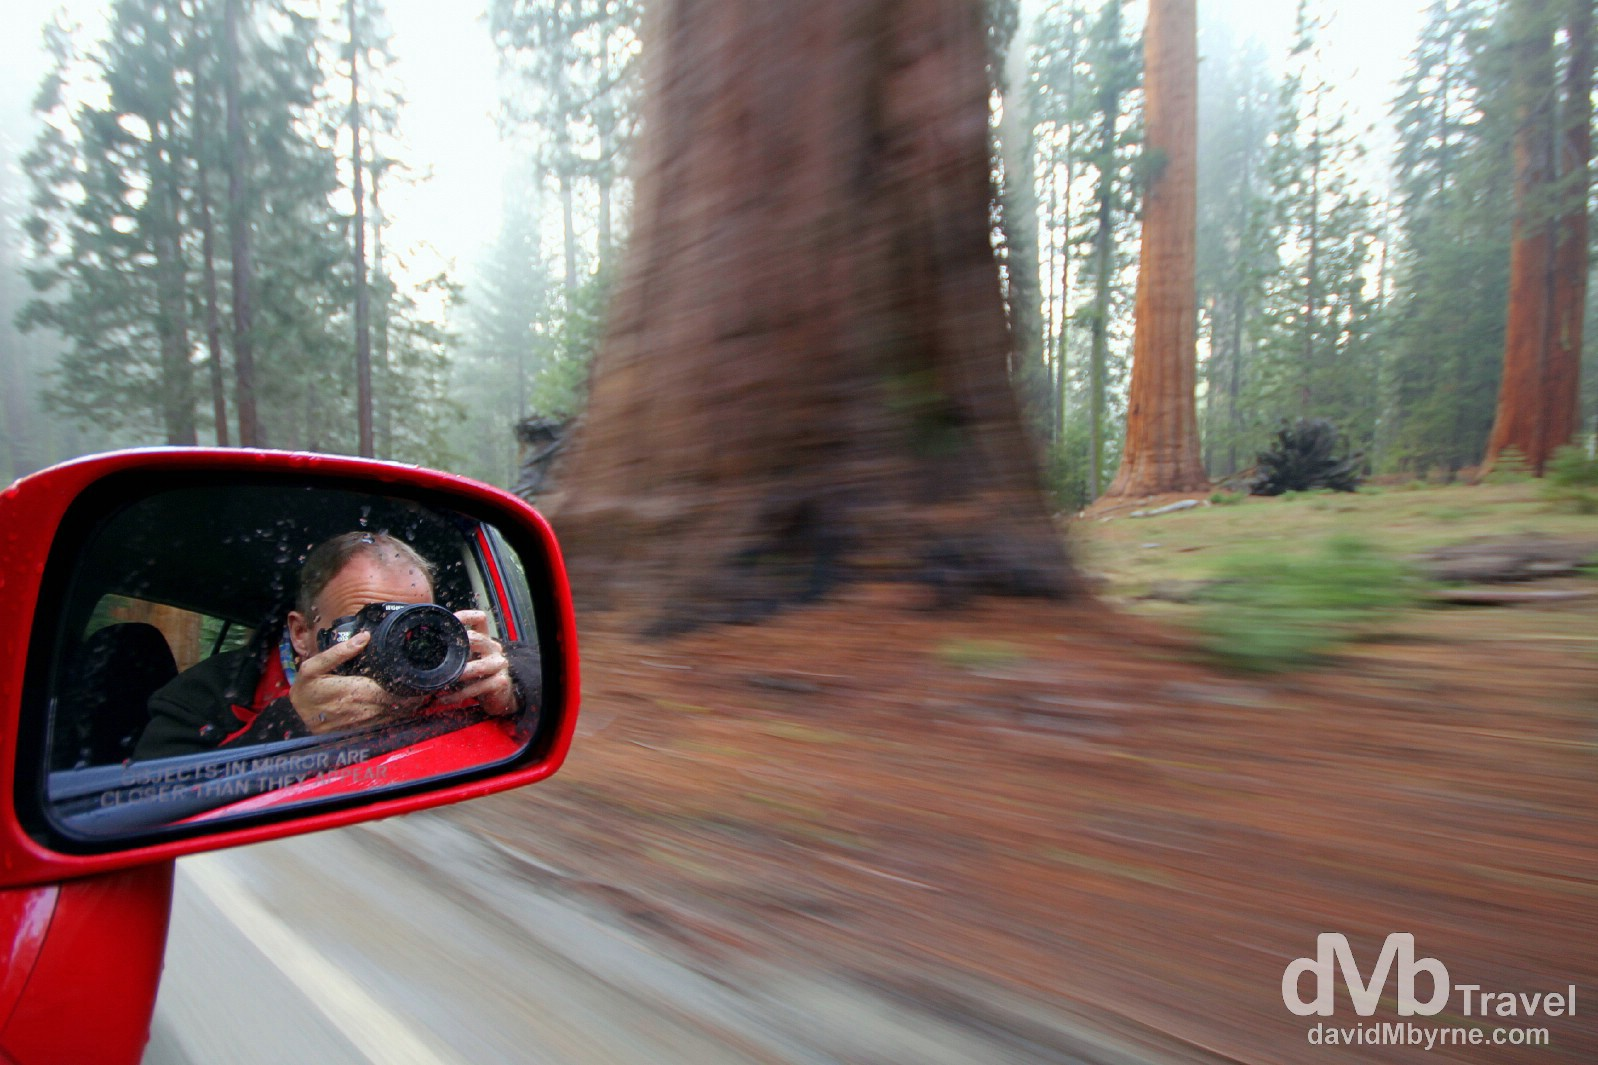 Selfie. Sequoia National Park, California, USA. April 2nd 2013.